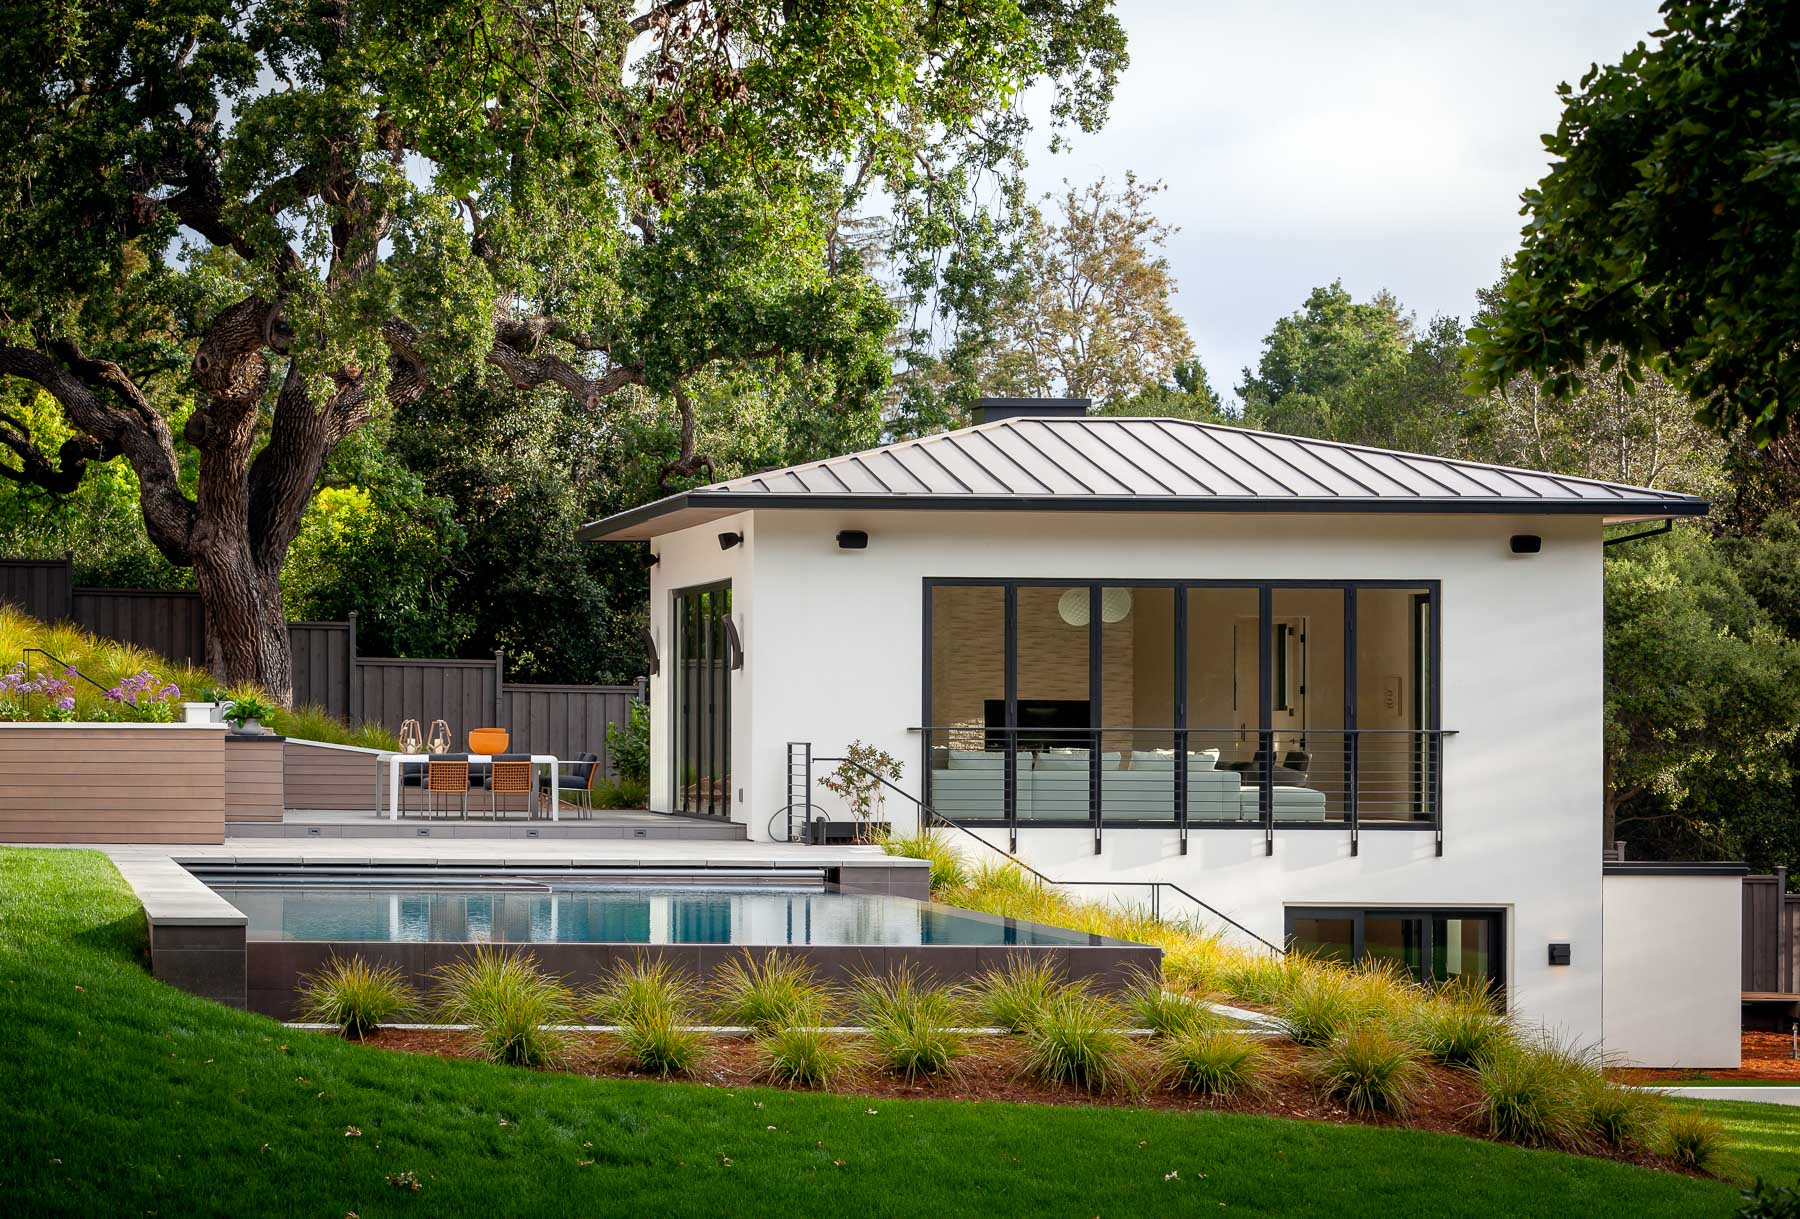 Los Altos Hills Residence - Scott Hargis Photo